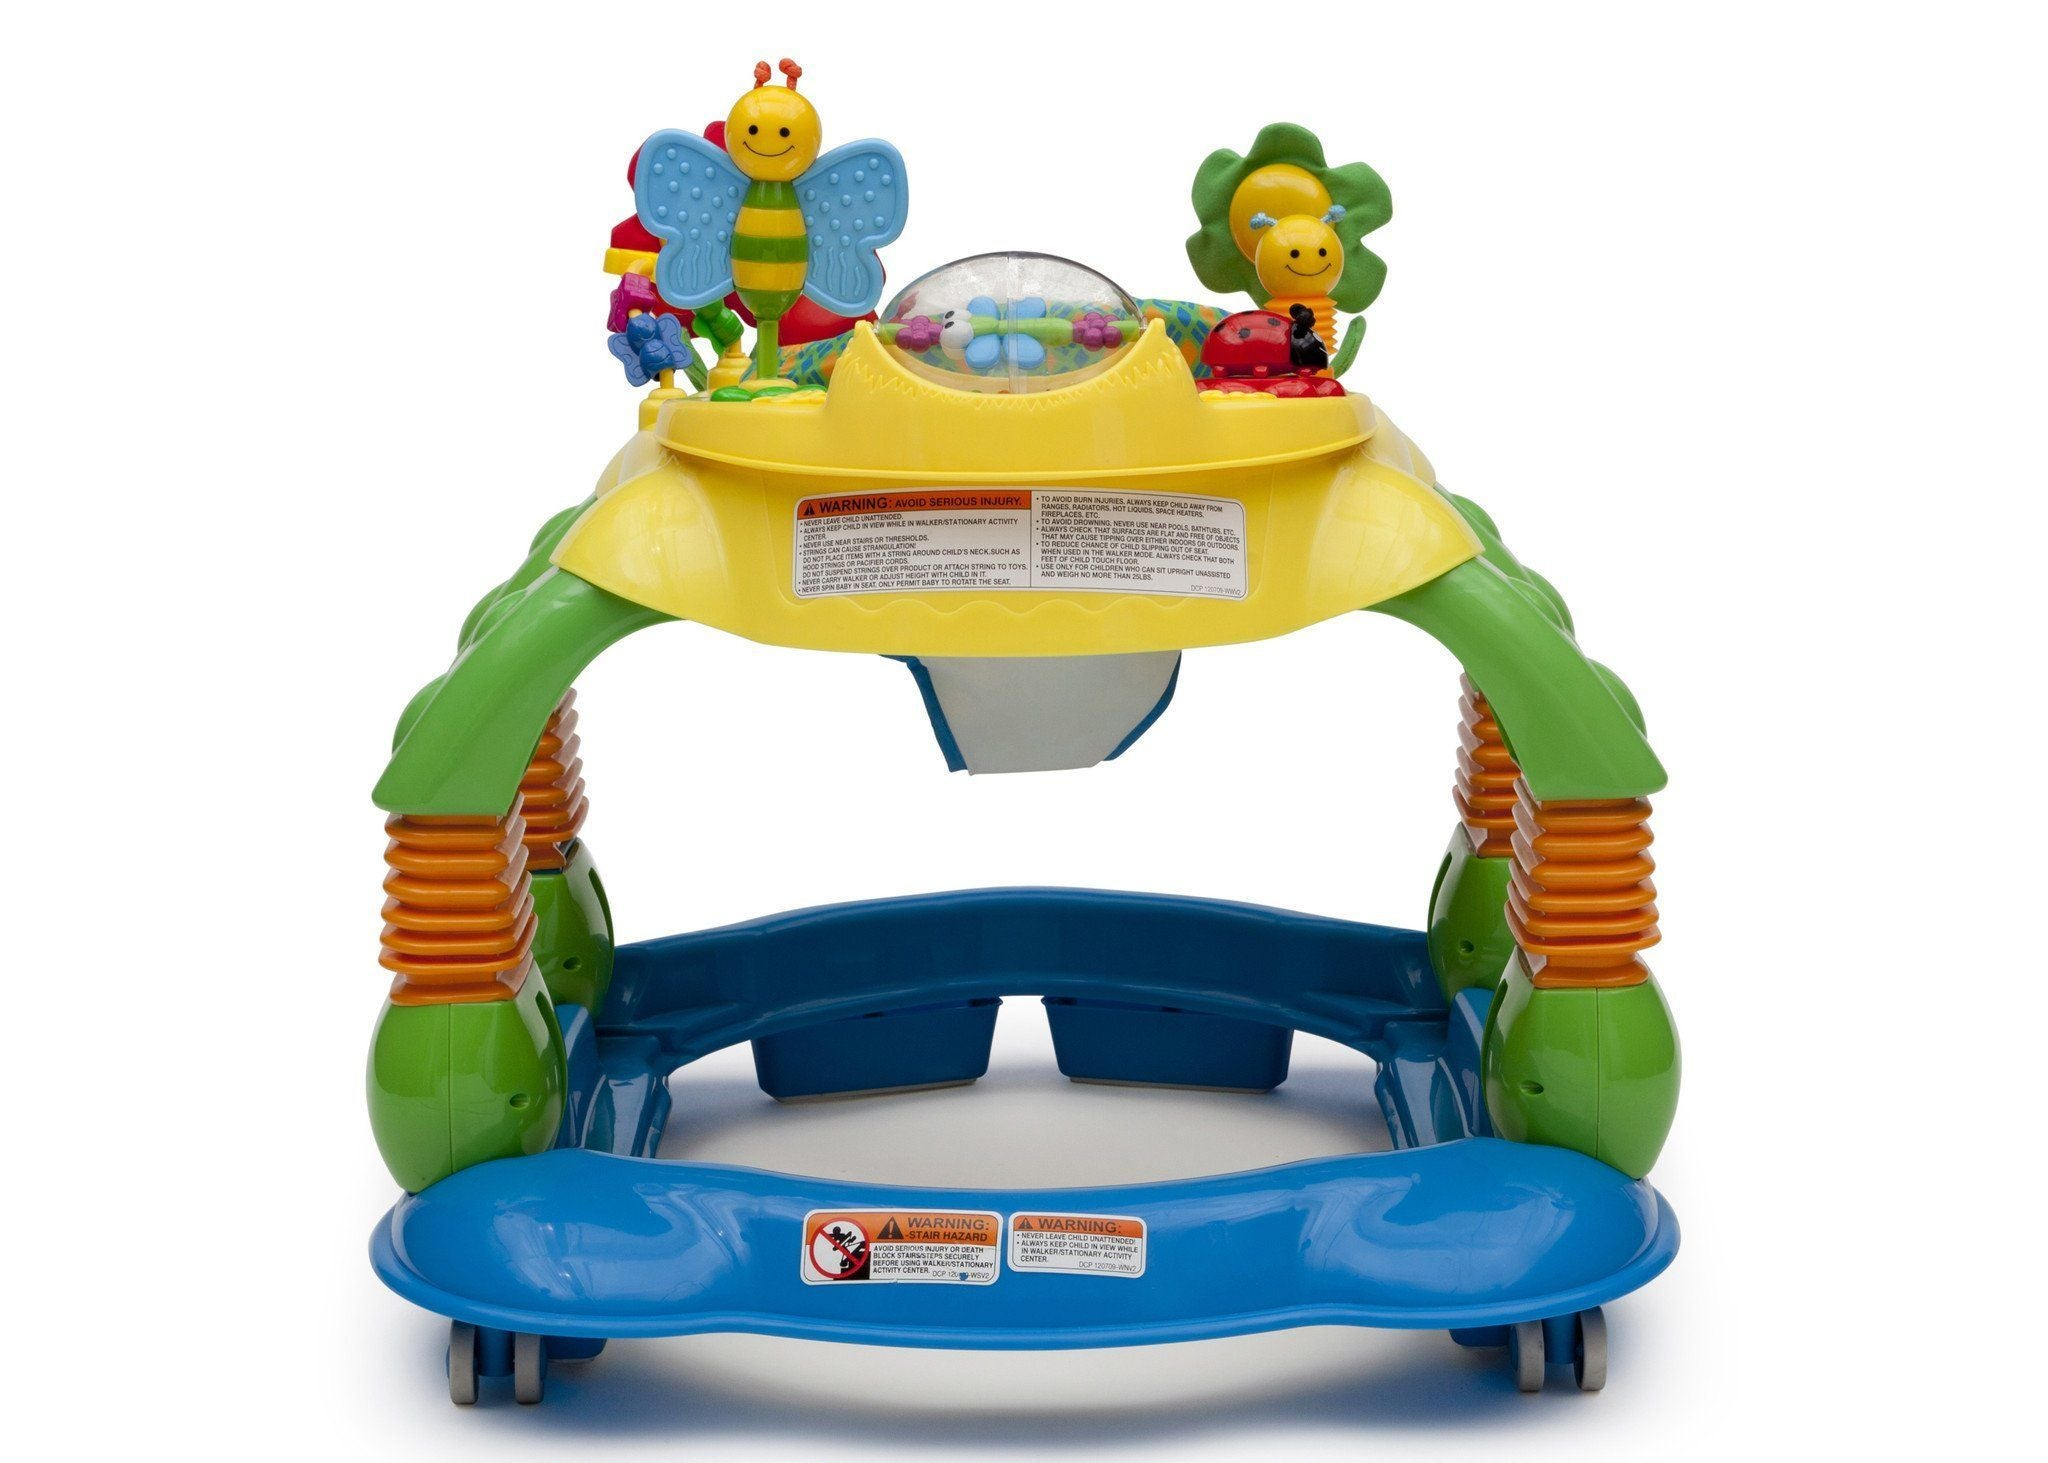 Delta Children Grid Lock (387) Lil Play Station II 3-in-1 Activity Center, Full Side View a4a